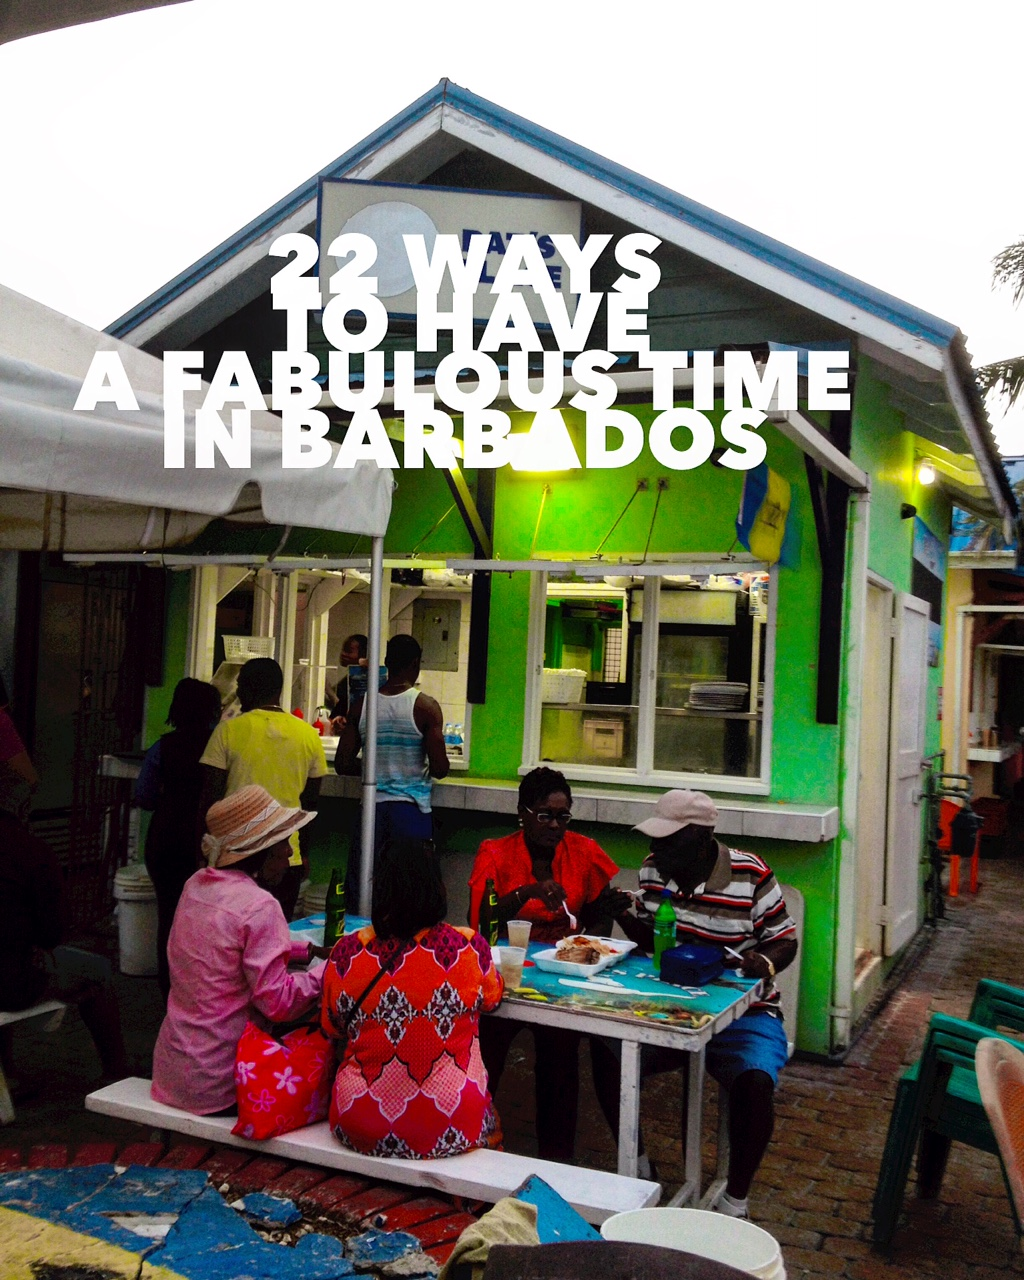 22 Ways to Have a Fabulous Time in Barbados